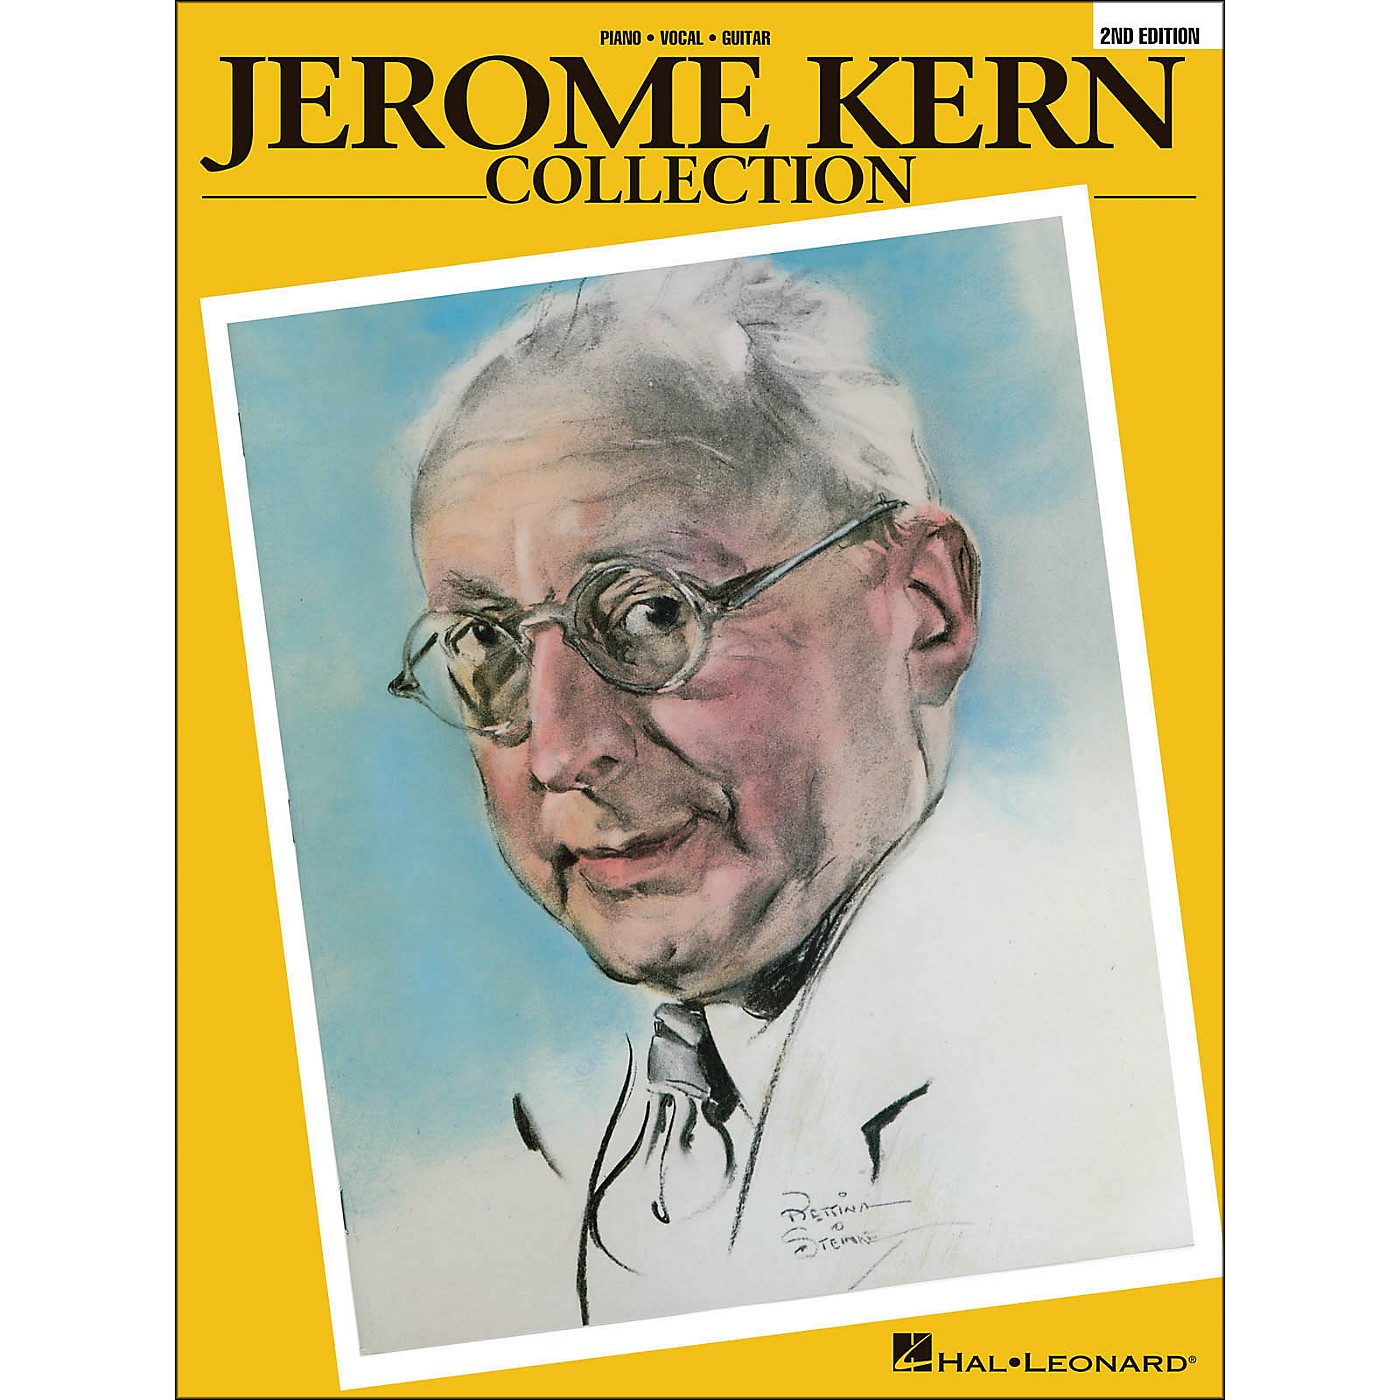 Hal Leonard Jerome Kern Collection - Soft Cover (2nd Edition) arranged for piano, vocal, and guitar (P/V/G) thumbnail